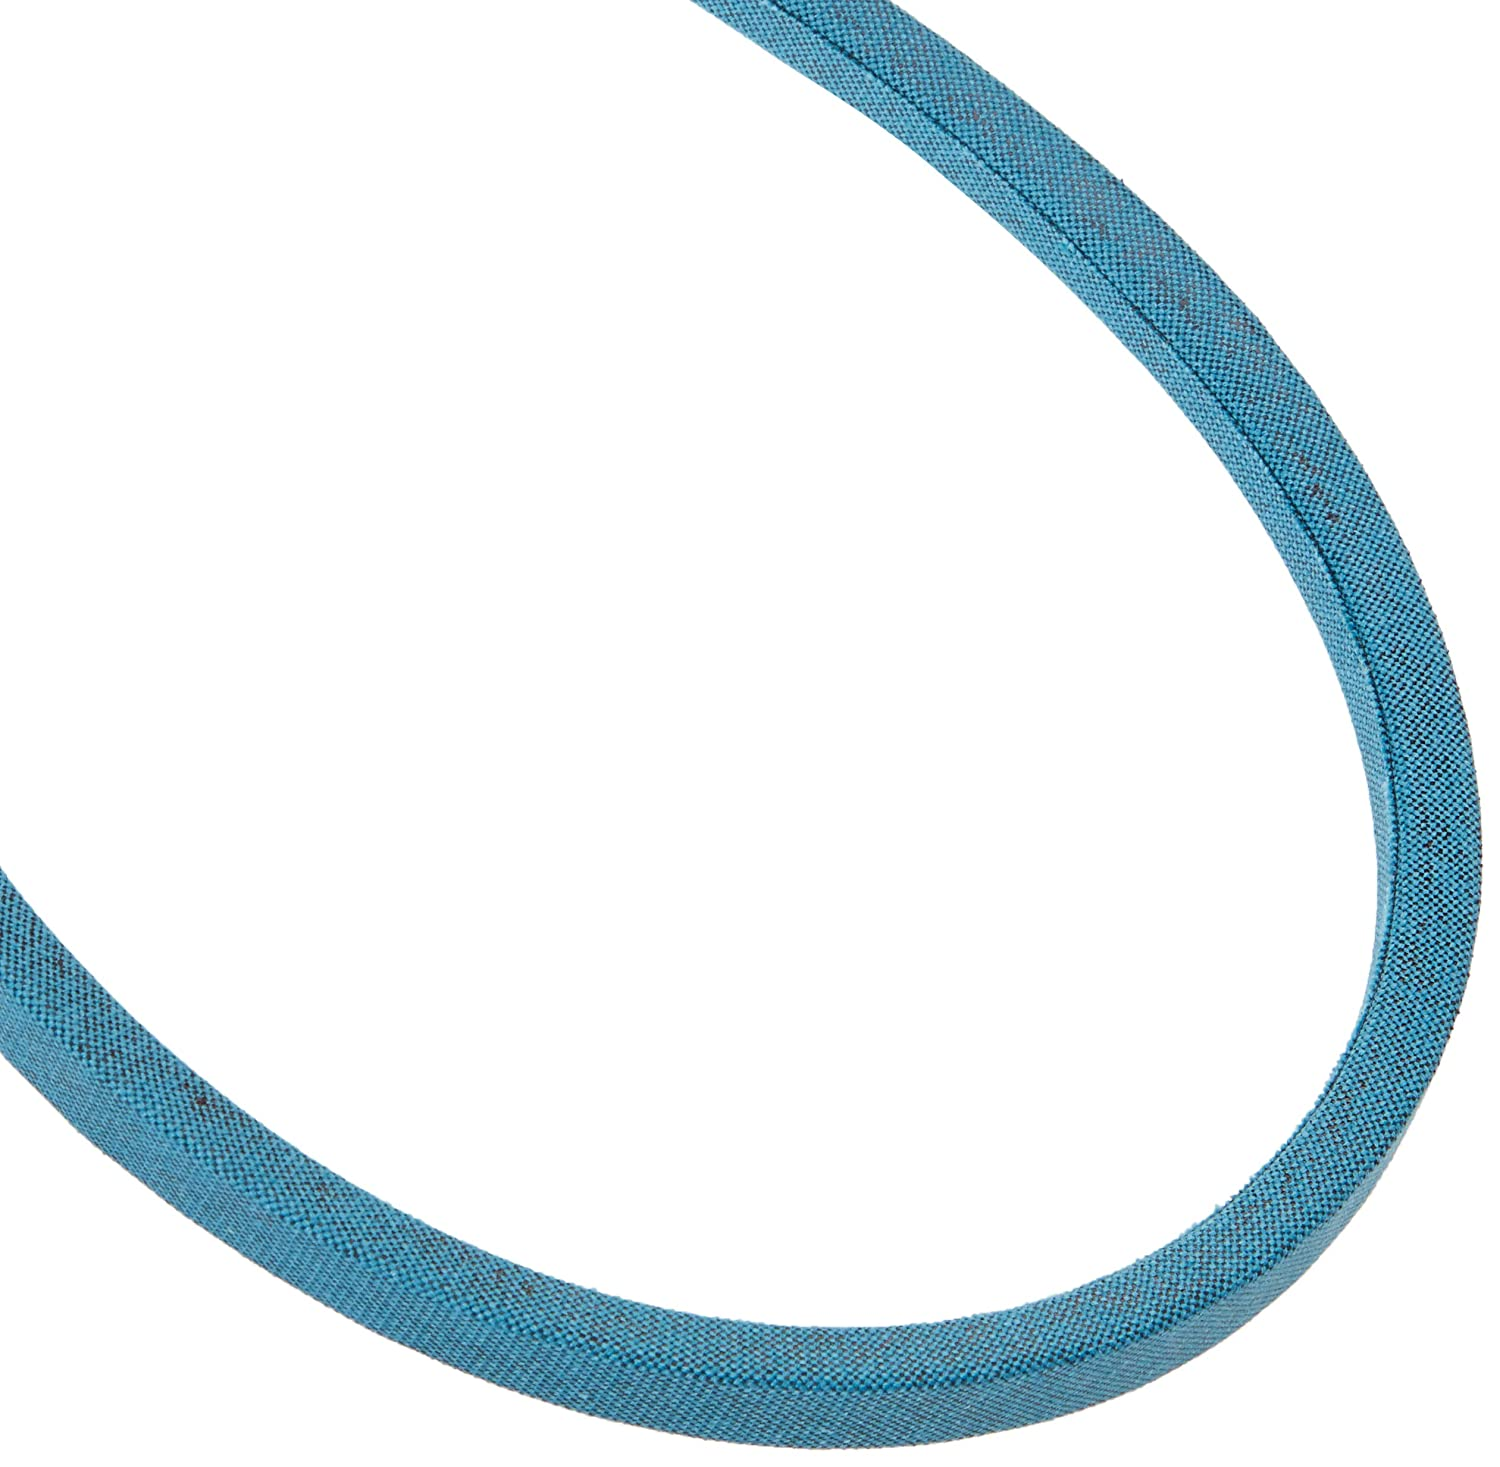 D&D PowerDrive 532132801 AYP American Yard Products Kevlar Replacement Belt, Aramid, 1